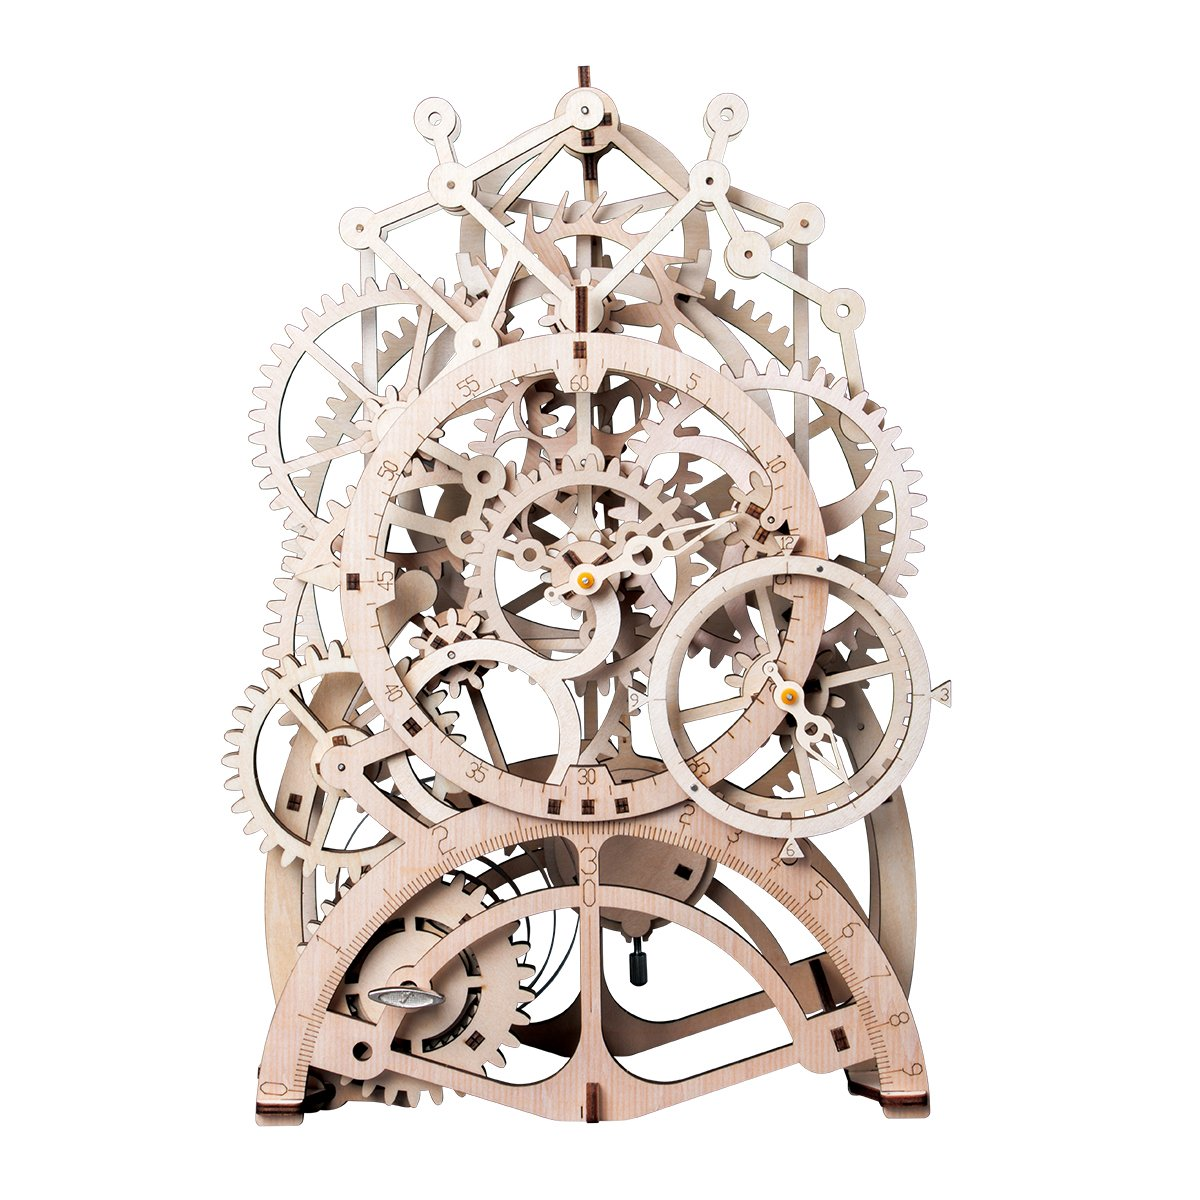 ROBTOIME 3D Assembly Puzzles Wooden Mechanical Gears Decor Laser-Cut Pendulum Clock Model Kit Best Engineering Toys for Teens ROBOTIME